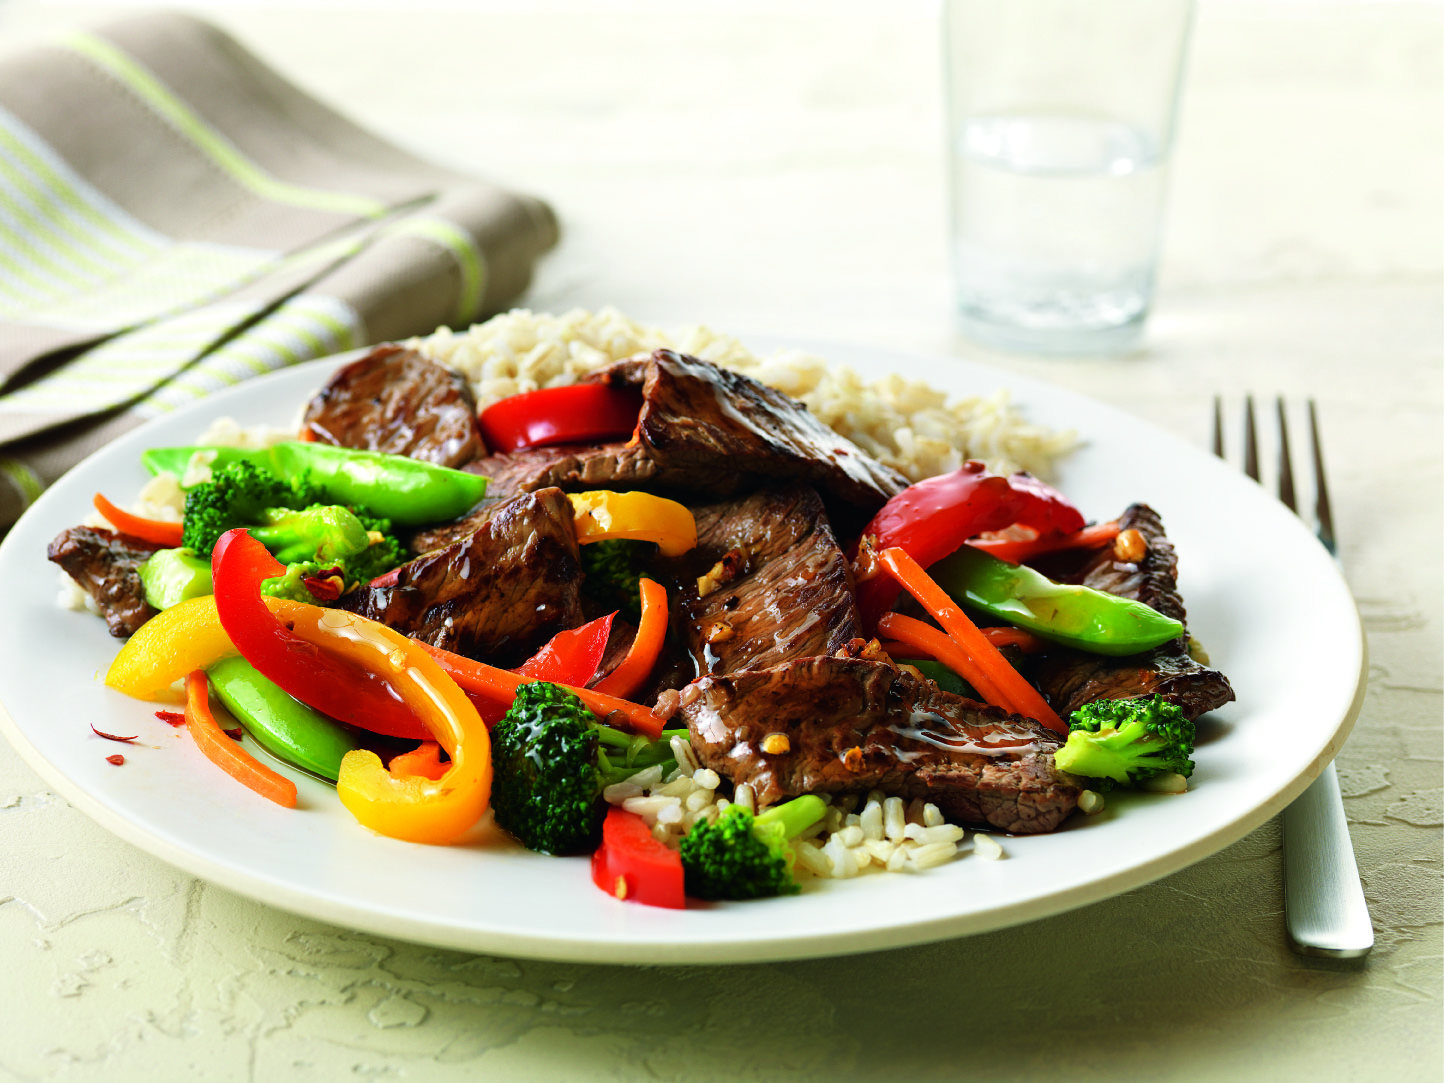 30 Minute Mongolian Beef Stir-Fry - Life Made Simple